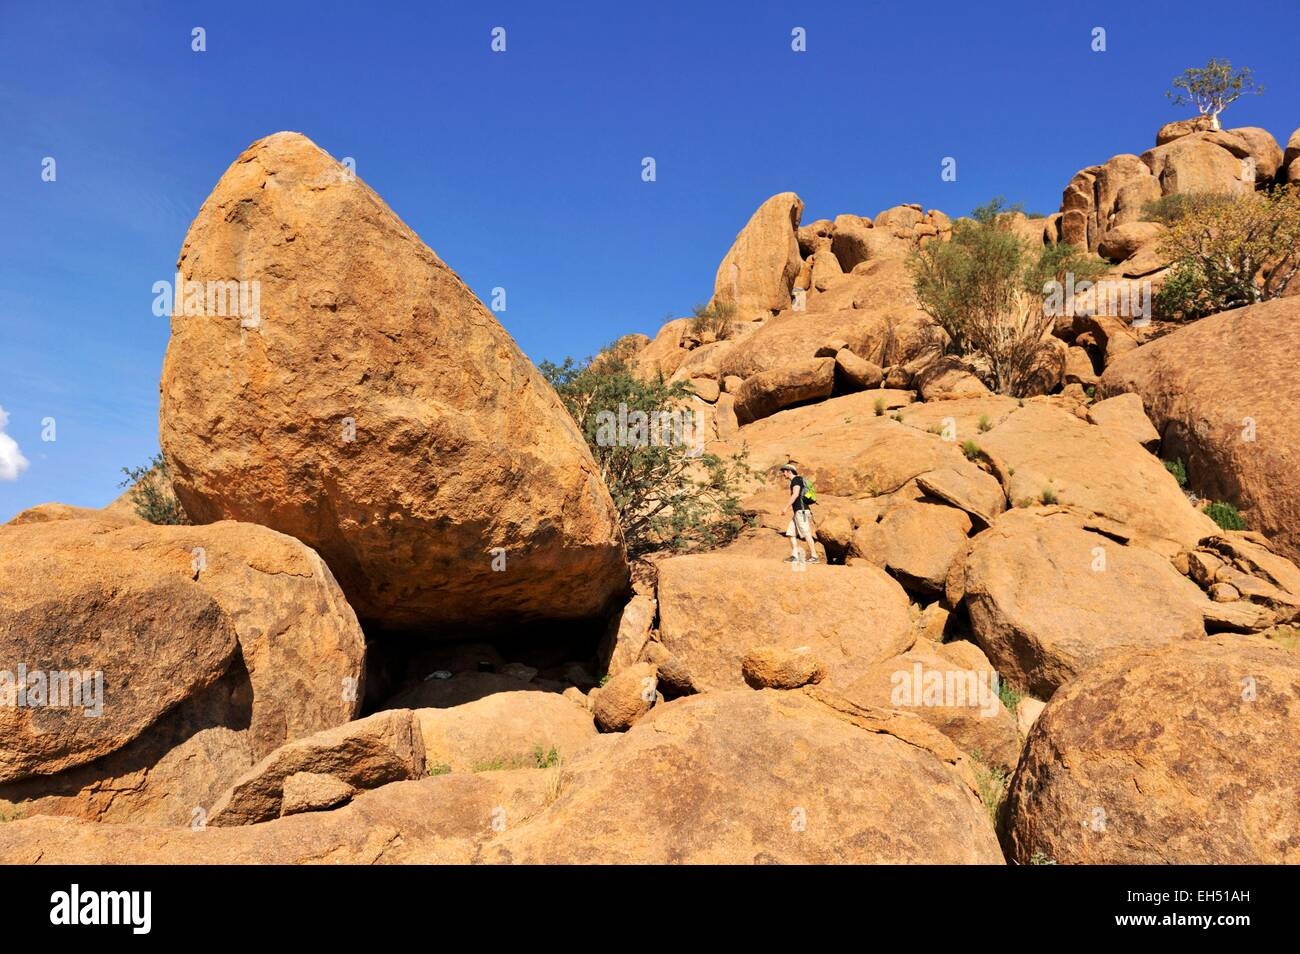 Namibia, Damaraland, Twyfeltontein, listed as World Heritage by UNESCO - Stock Image